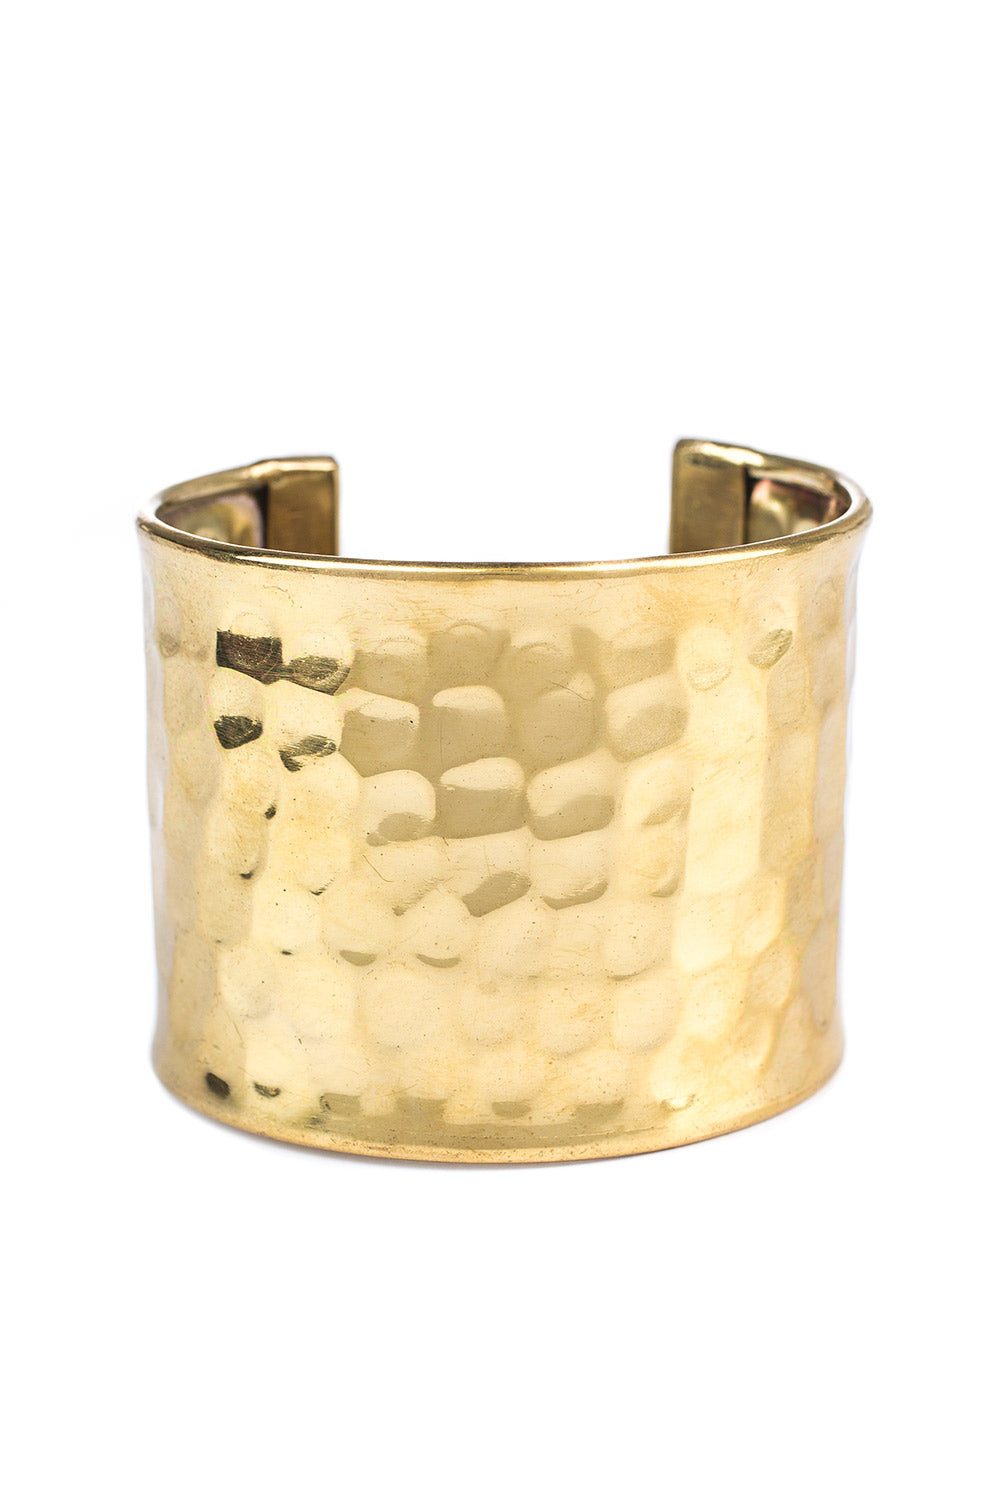 Type 3 Hammered Gold Bracelet